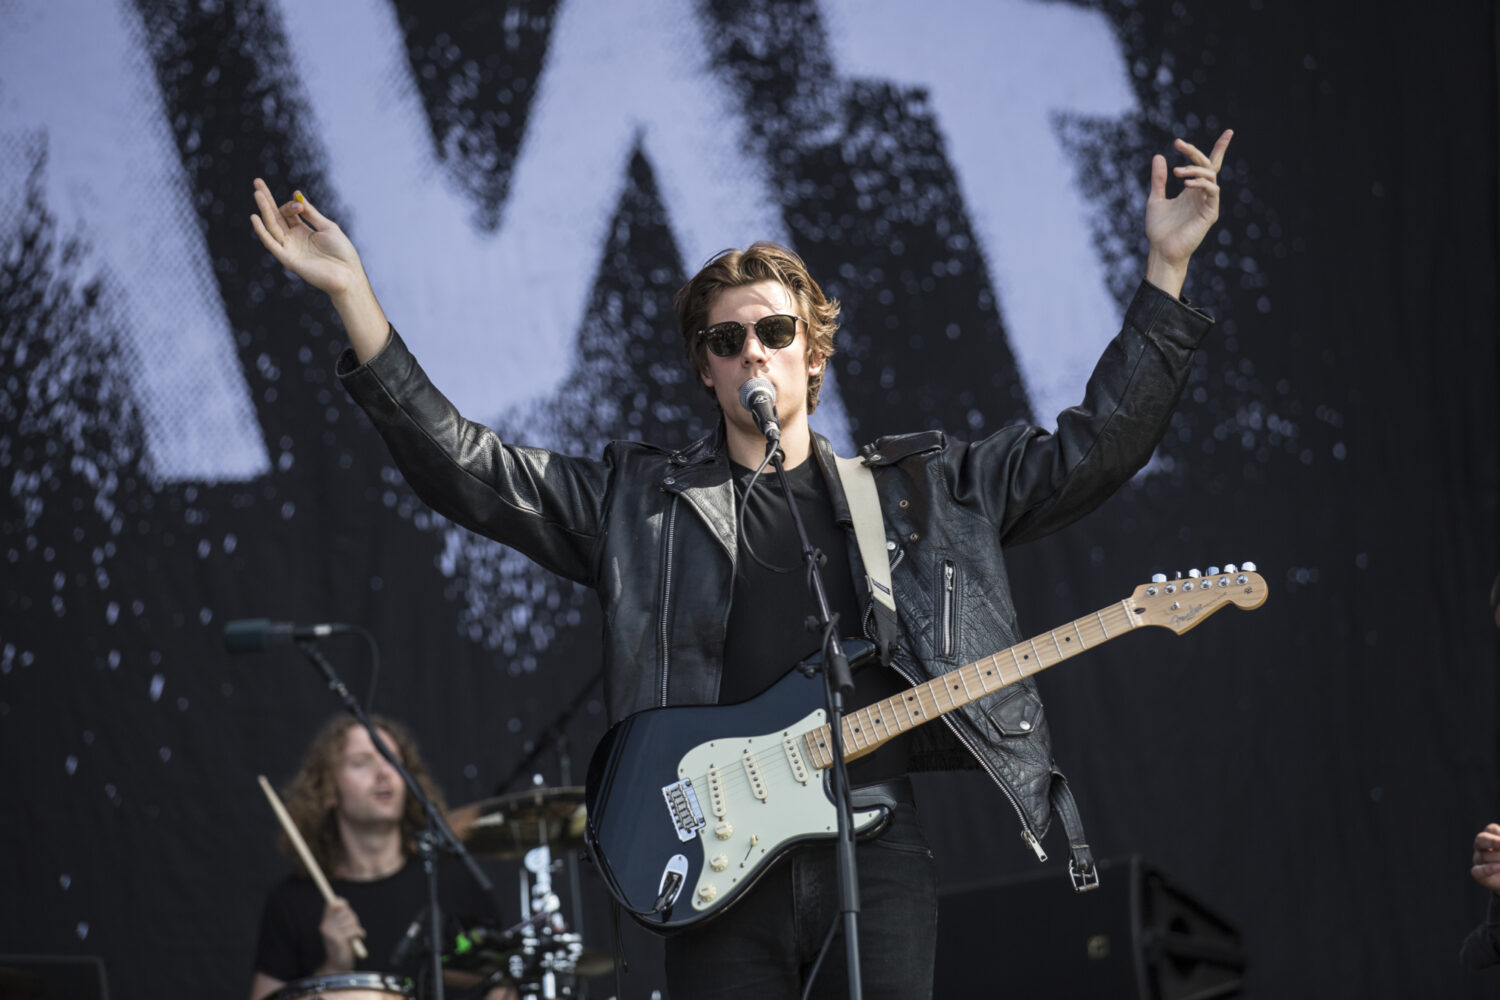 VANT announce UK tour